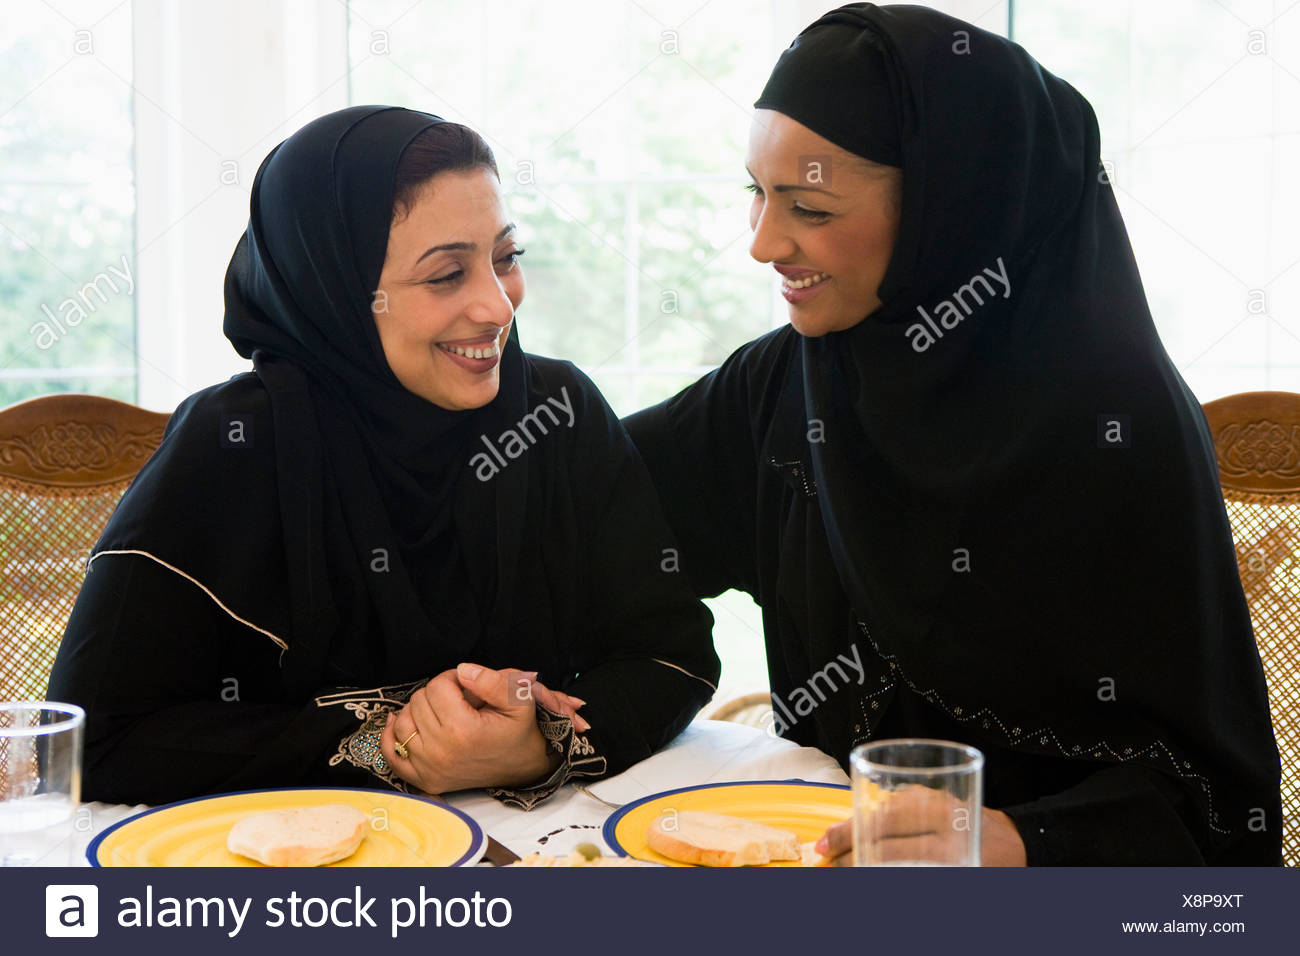 Two women sitting at dinner table smiling (high key) - Stock Image